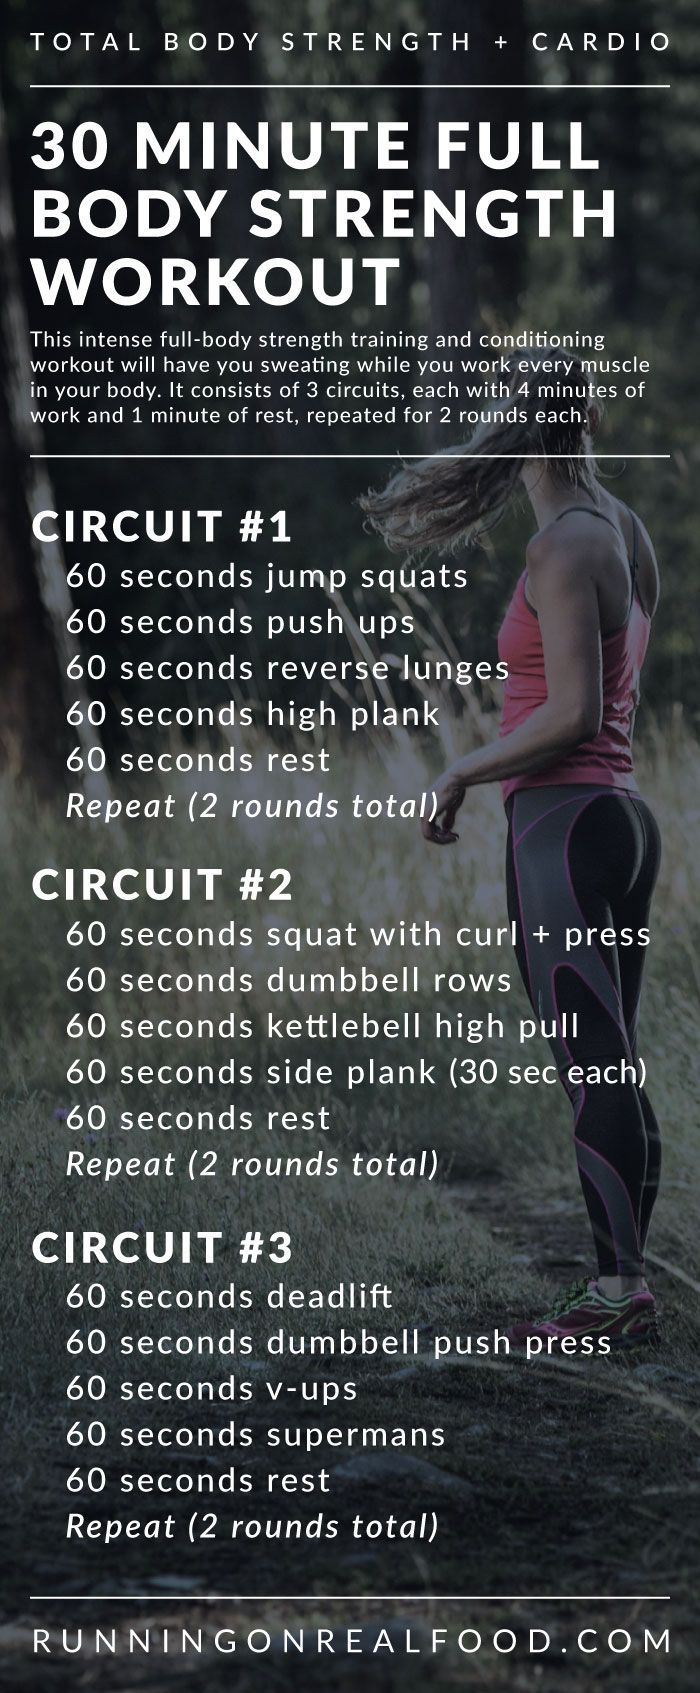 Get sweating and beat boredom with this 30 minute full-body strength training workout for the gym. Work every muscle, improve cardiovascular fitness, blast a ton of calories and have fun! You'll need some dumbbells, a kettlebell and a timer to complete th http://www.weightlossjumpstar.com/weight-loss-motivational-music/